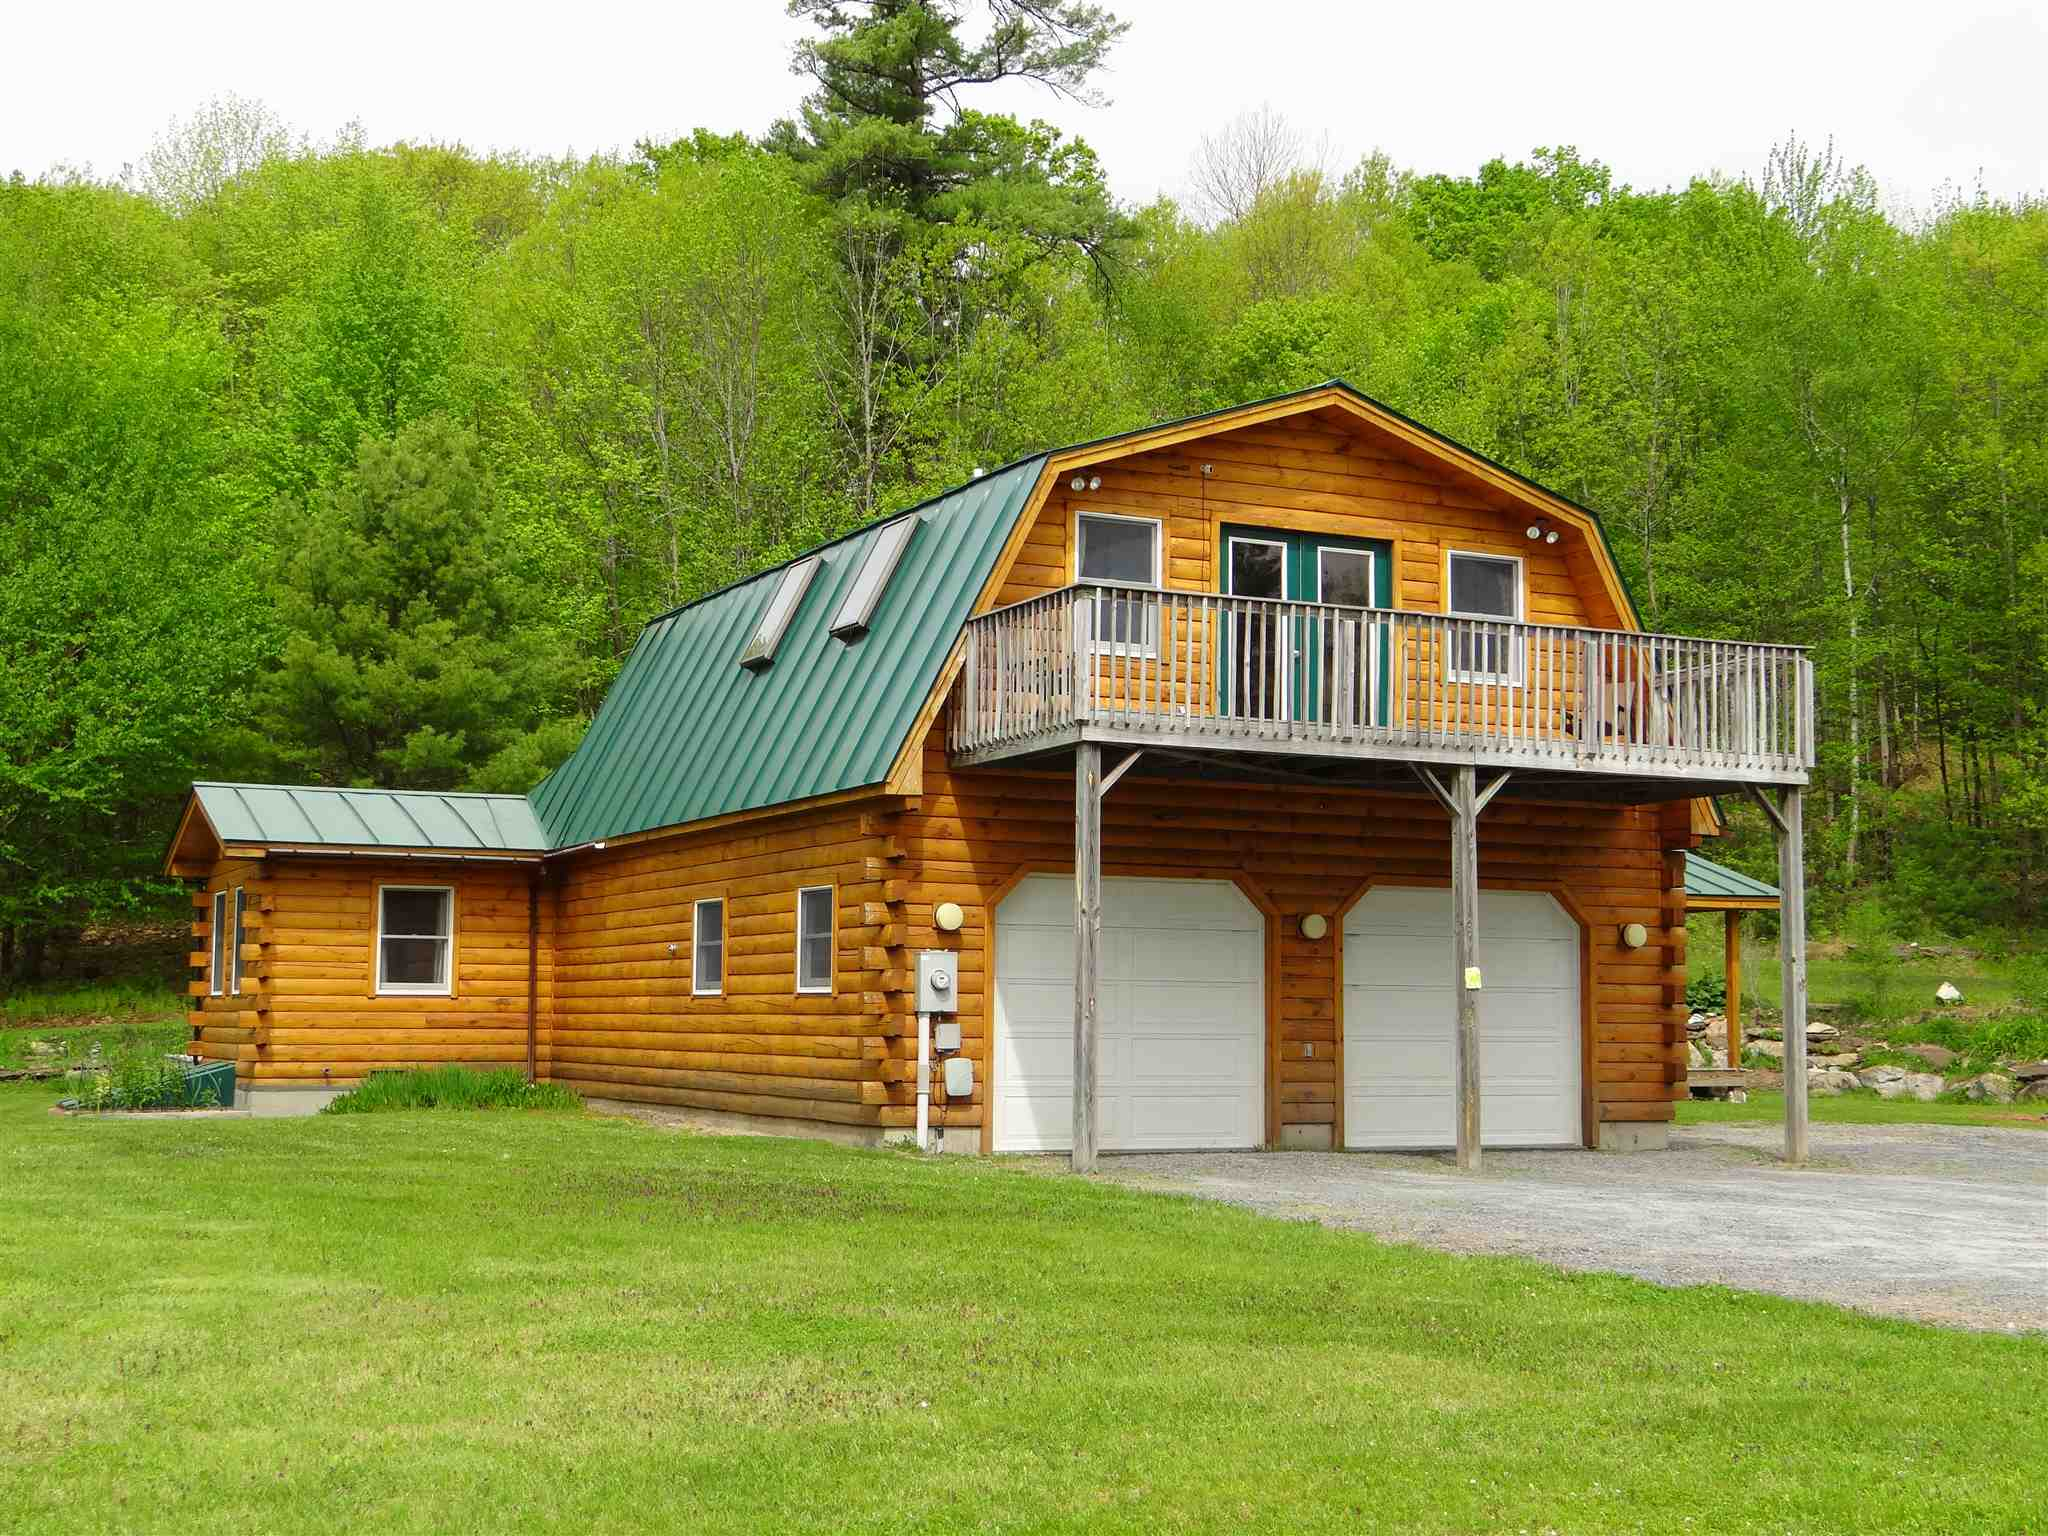 MLS 4807276: 277 Archertown Road, Orford NH